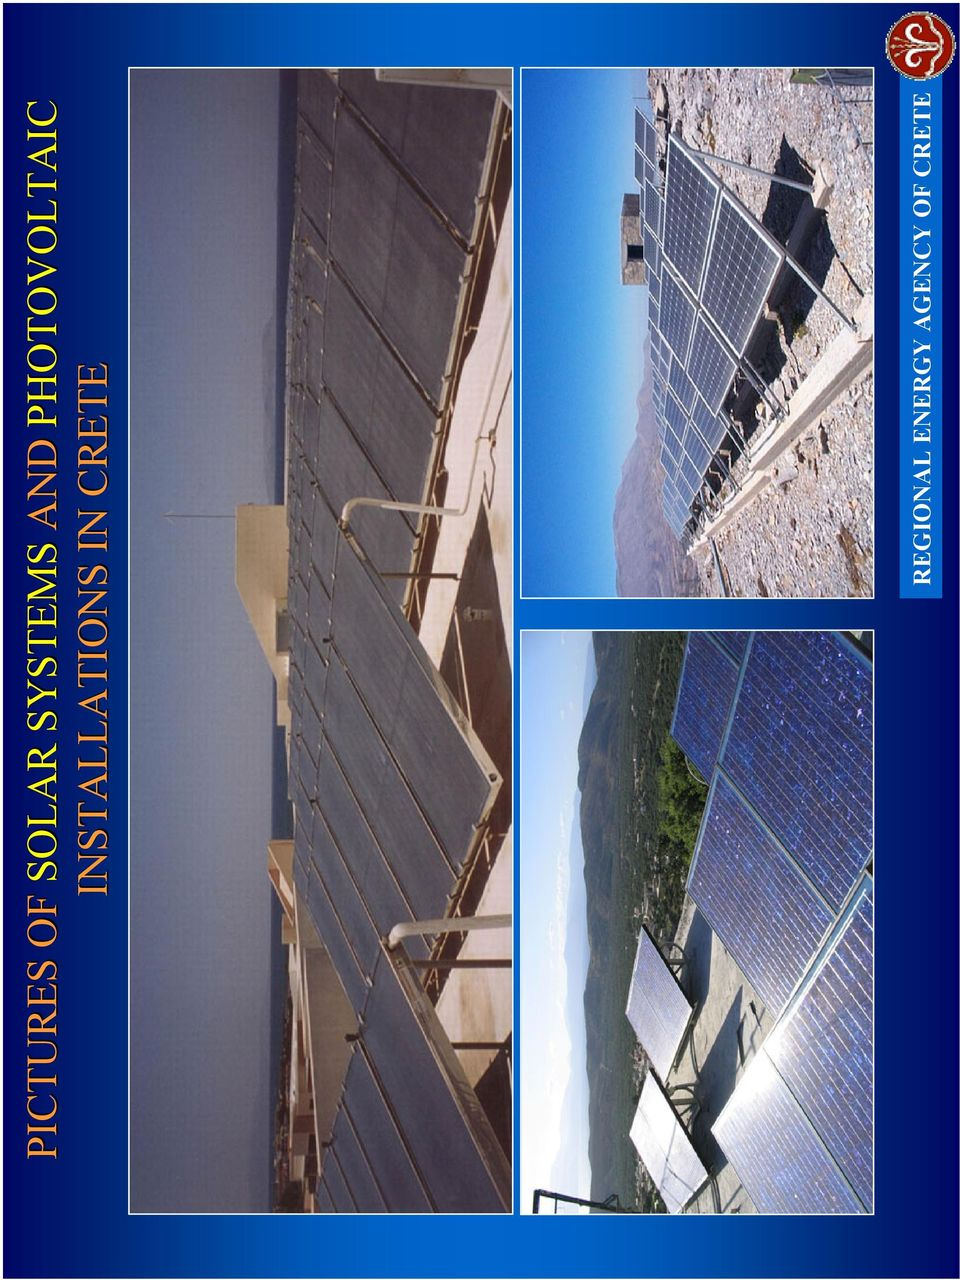 AND PHOTOVOLTAIC